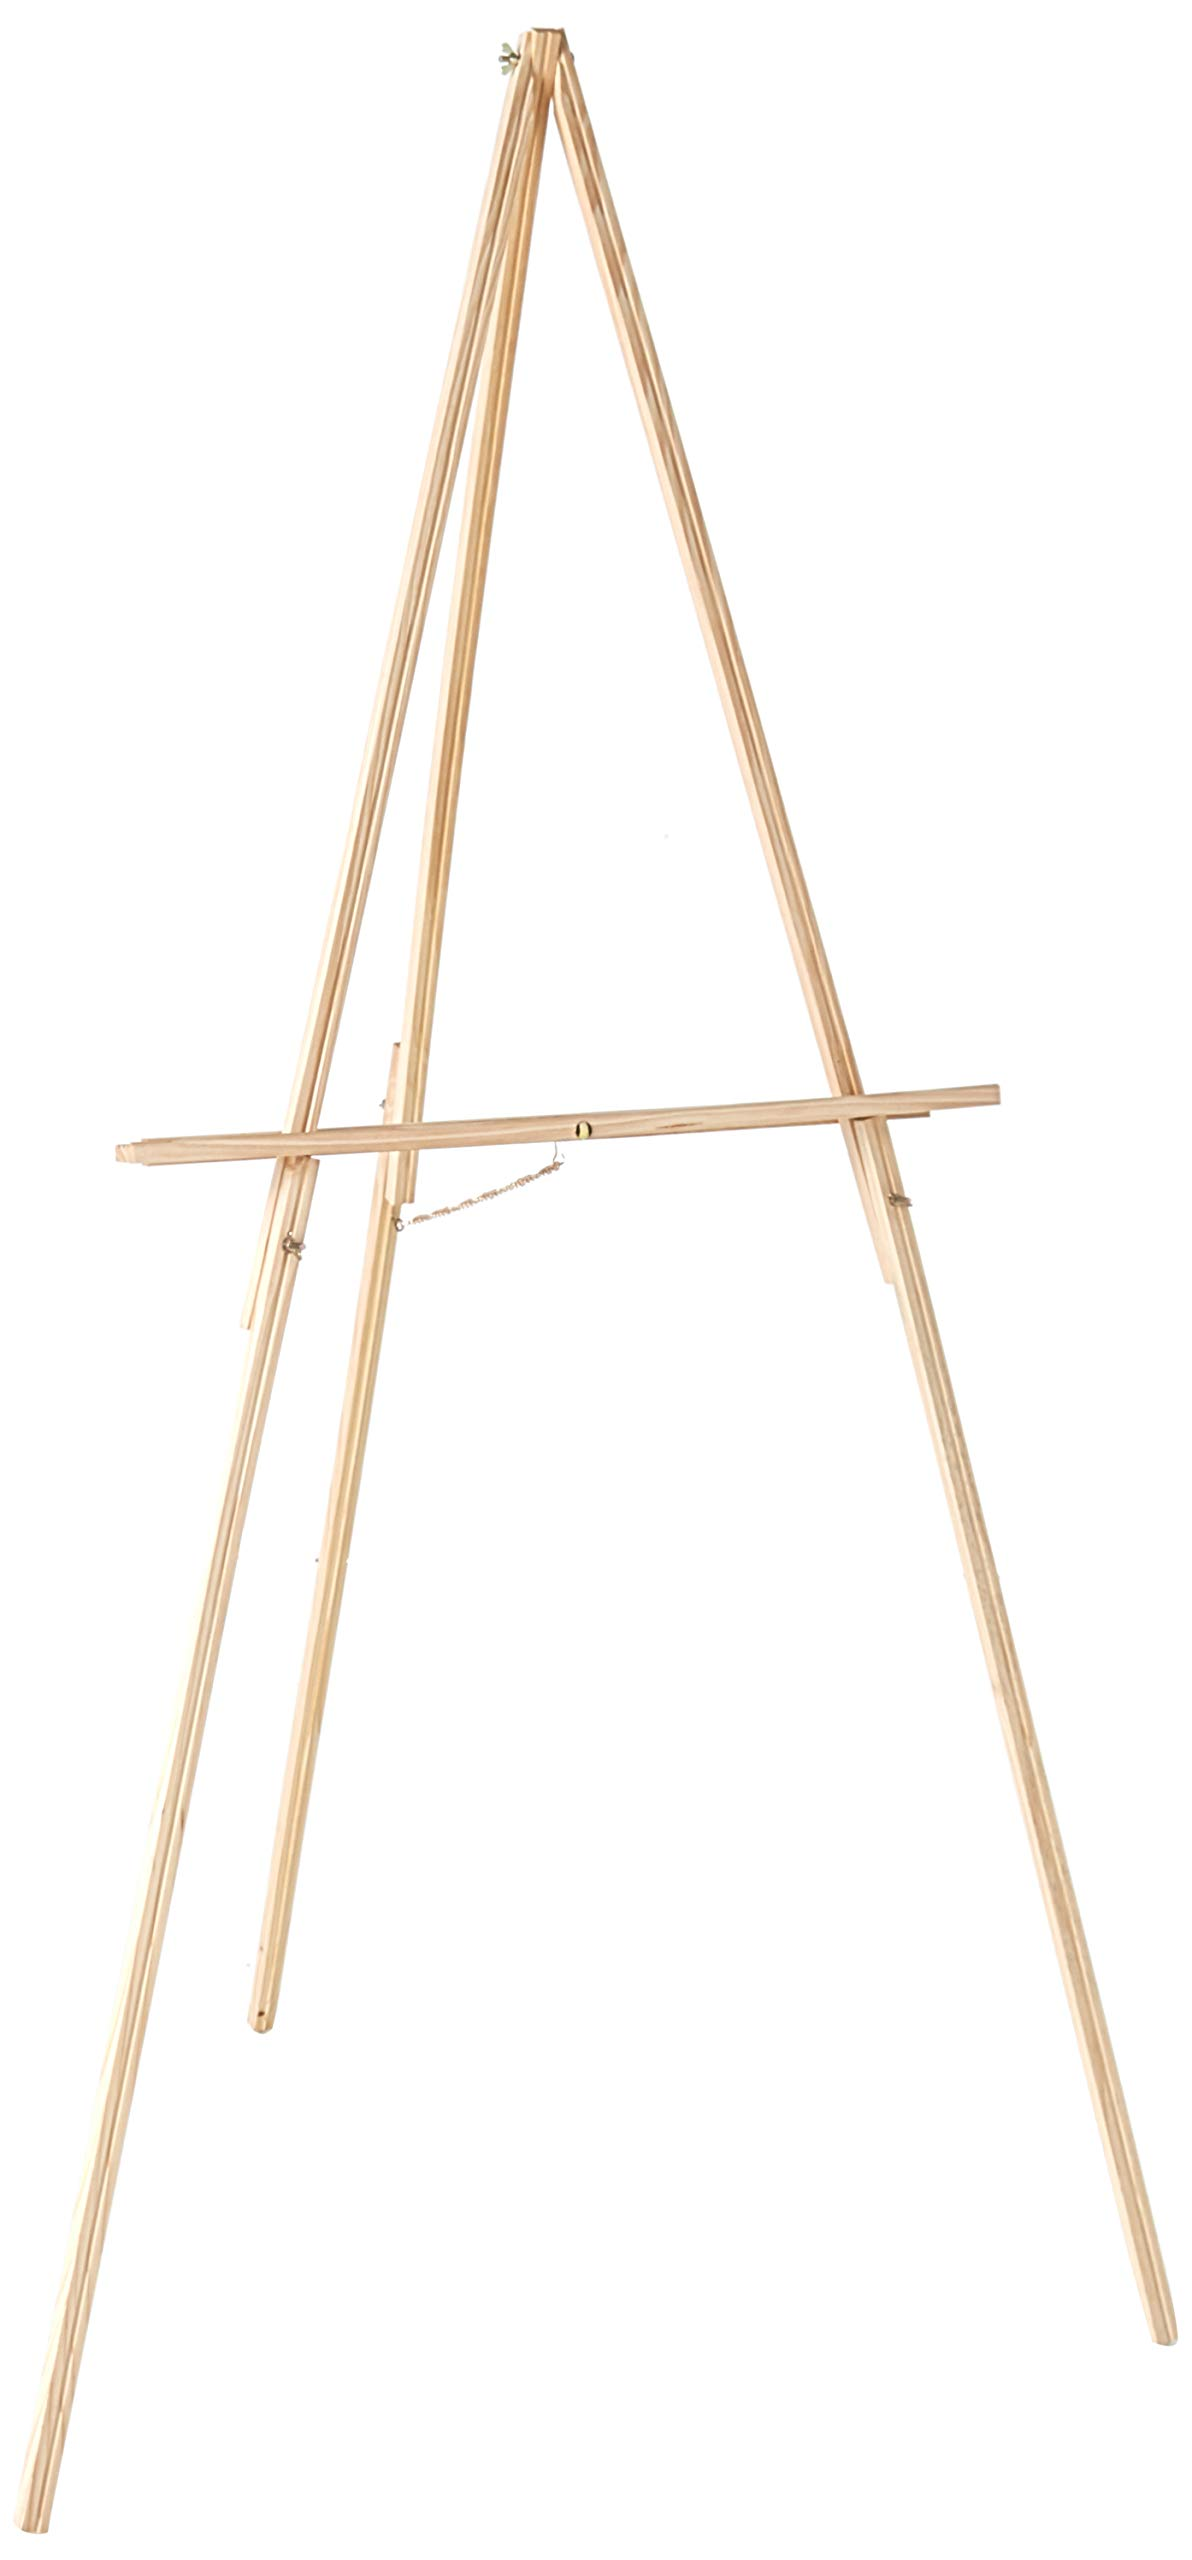 KINGART 735 65'' Floor Natural Wood Easel, by KINGART